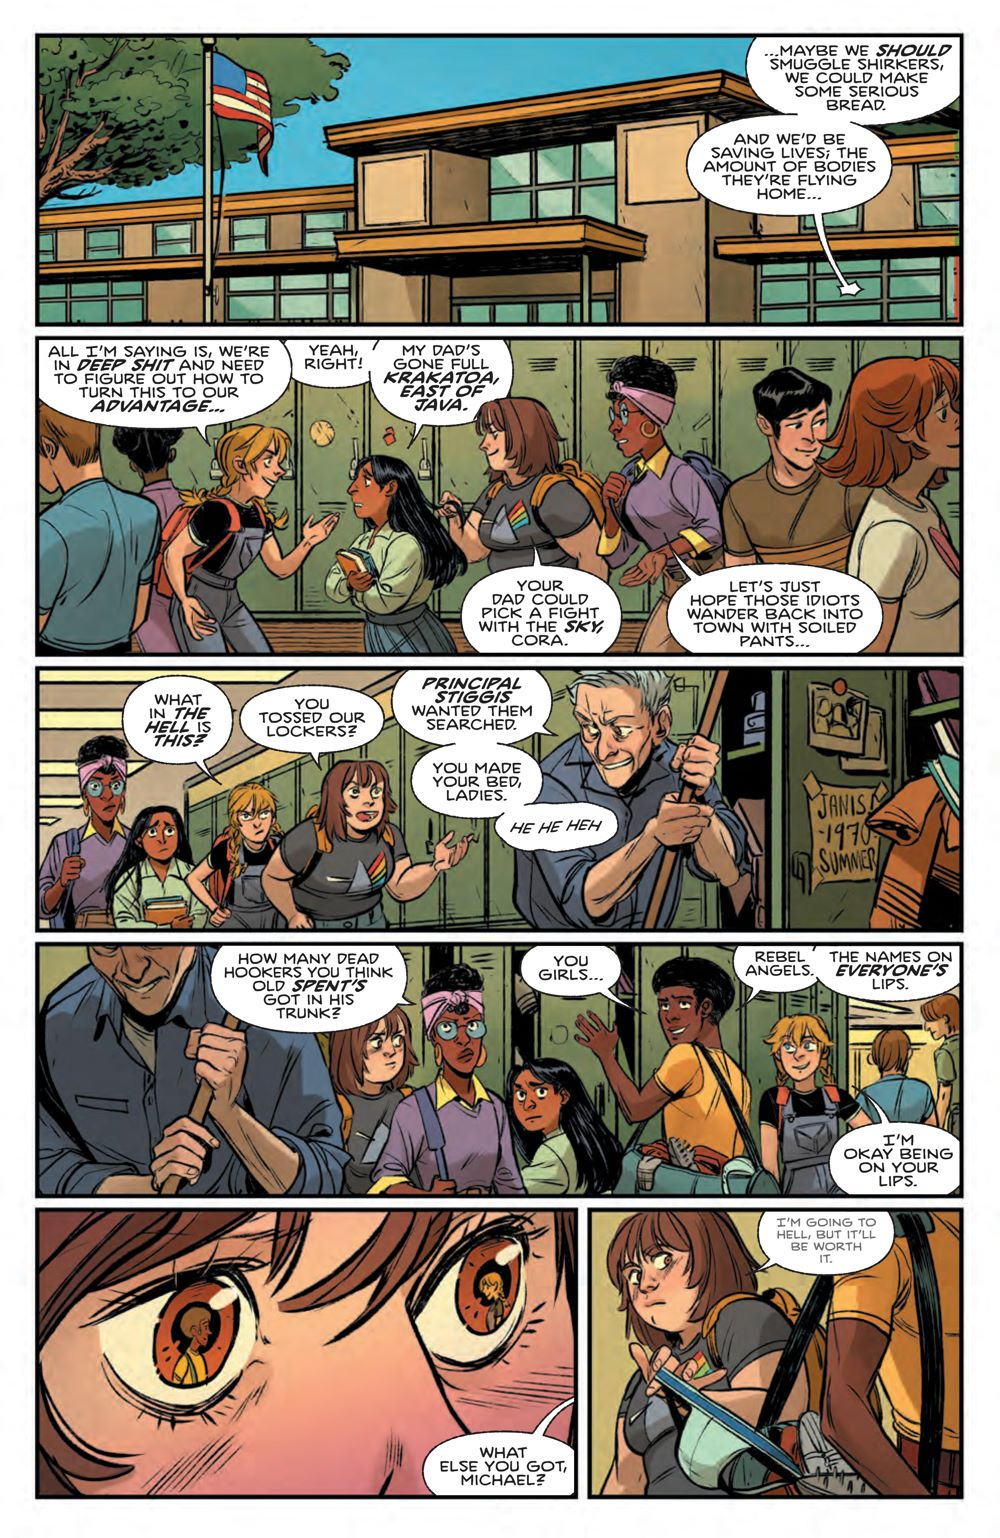 ProctorValleyRoad_002_PRESS_4 ComicList Previews: PROCTOR VALLEY ROAD #2 (OF 5)